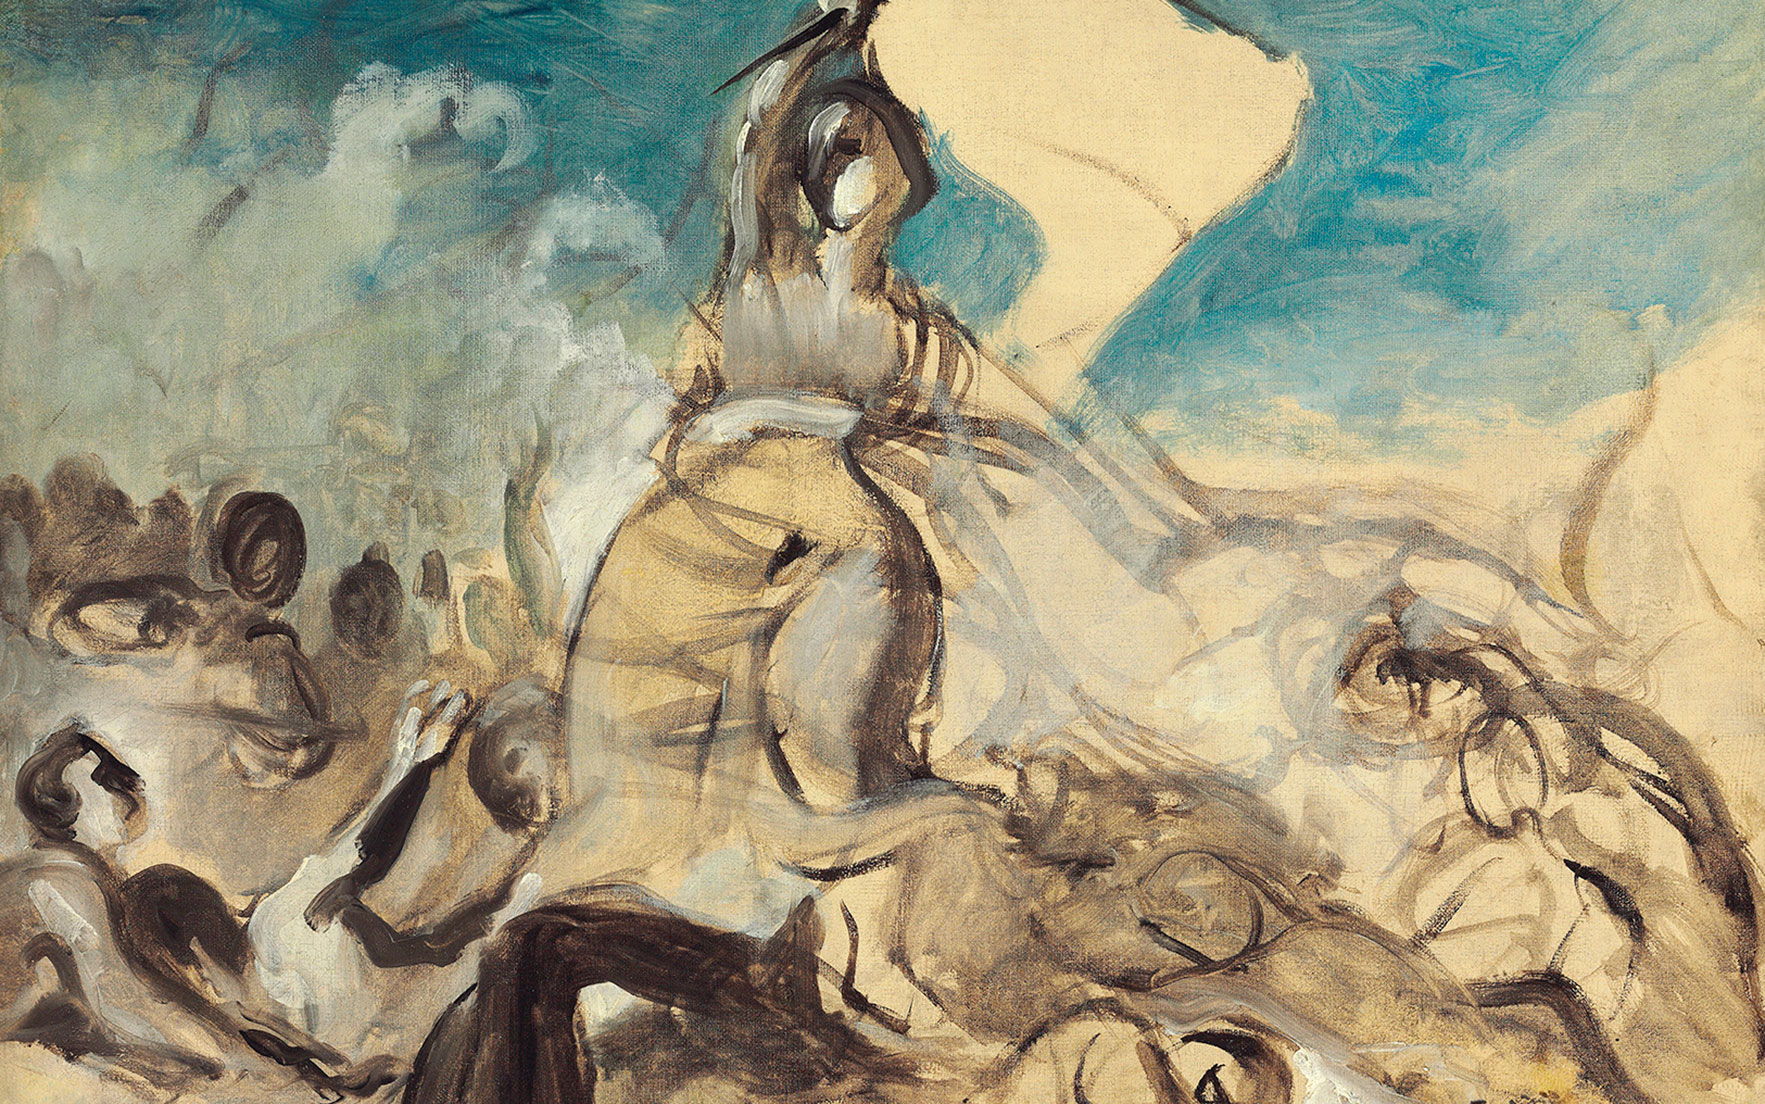 Eugène Delacroix (French, 1798-1863), Le 28 juillet – la liberté guidant le peuple, 1830. Oil on canvas. 25⅜ x 32 in (64.5 x 81.3 cm). Estimate £700,000-1,000,000. This work will be offered